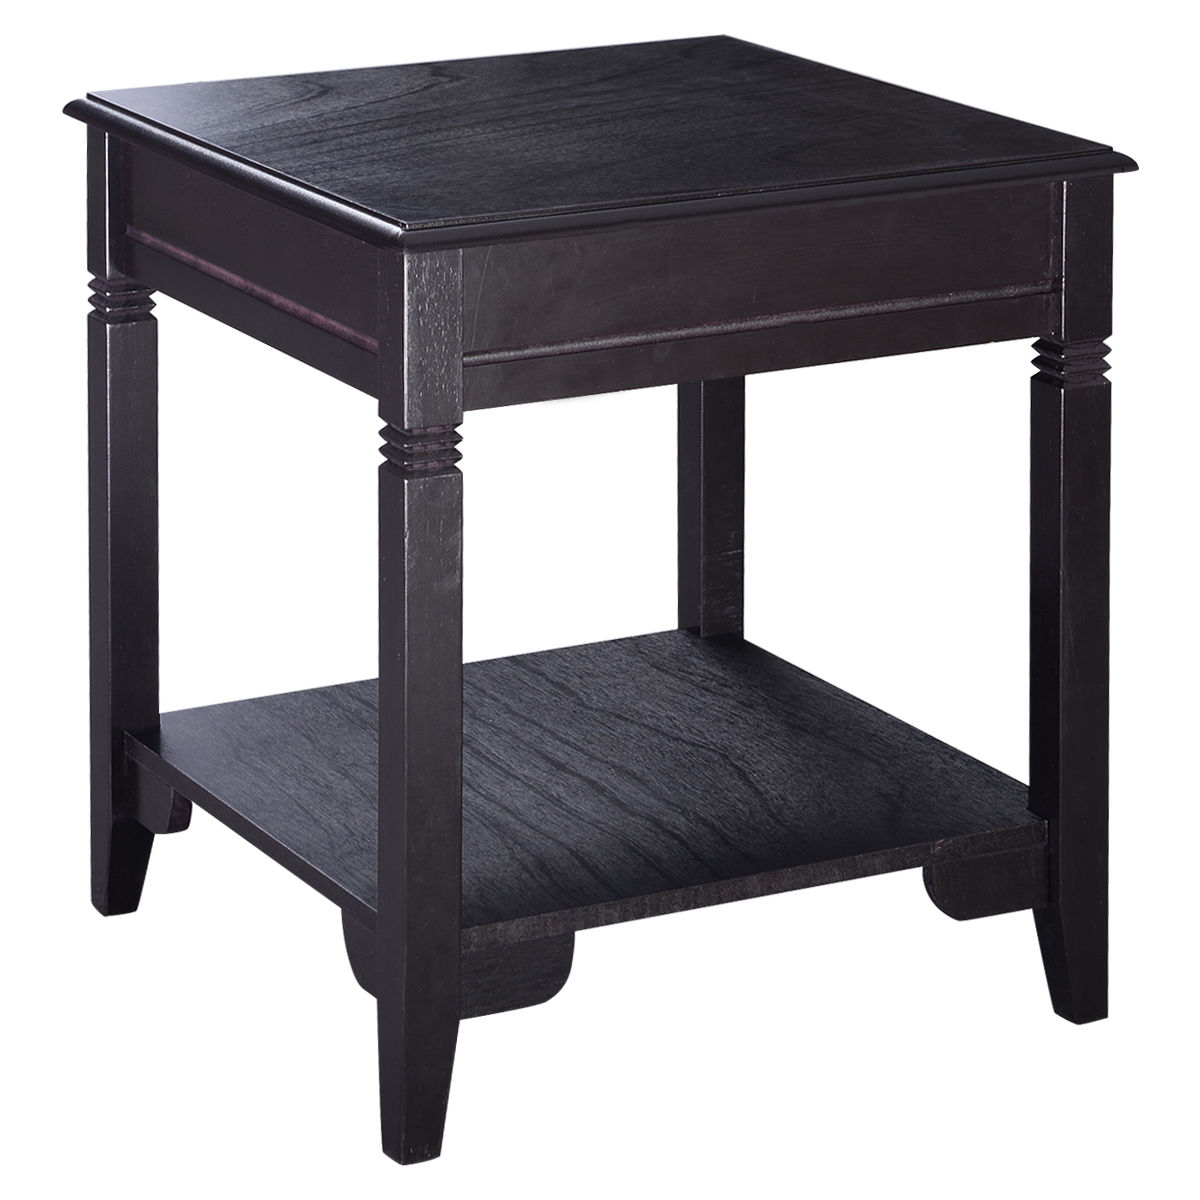 Costway End Table Durable Quality Furniture Shelf Decor Home Living Room